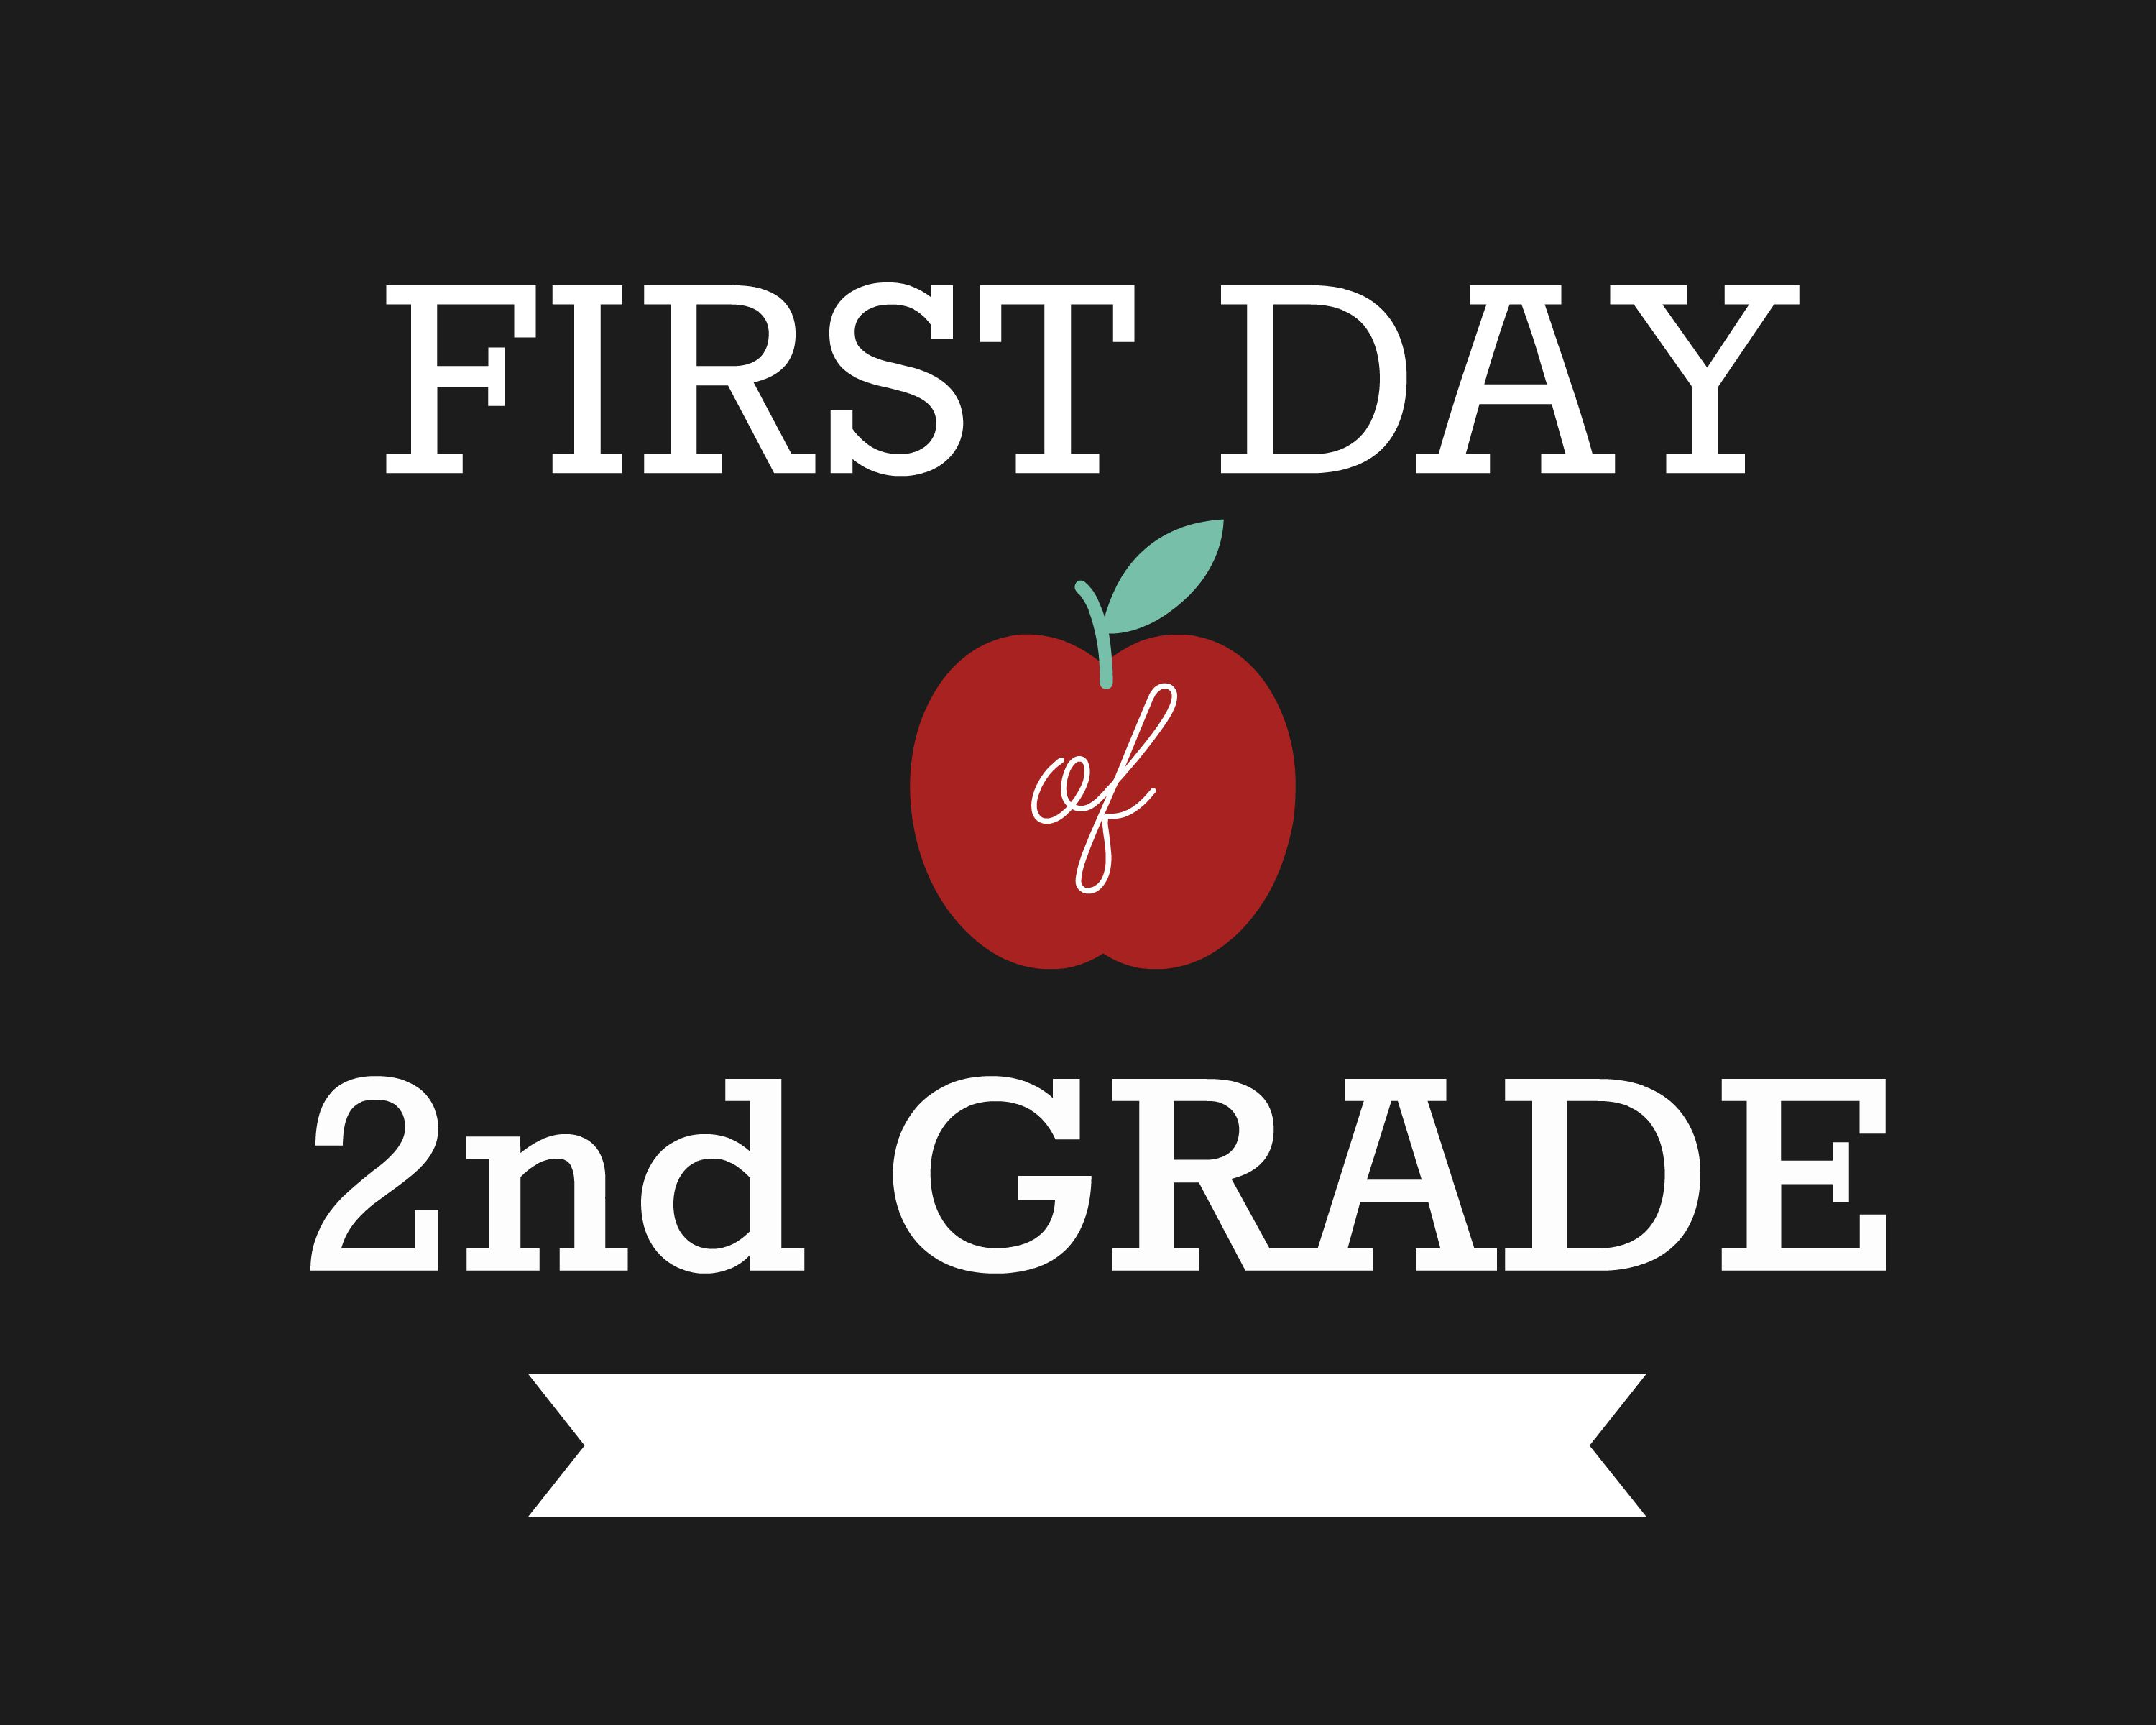 photo regarding First Day of Second Grade Printable Sign known as Do-it-yourself Initial Working day of Higher education Symptoms Ruler Craft - Pre-K up towards